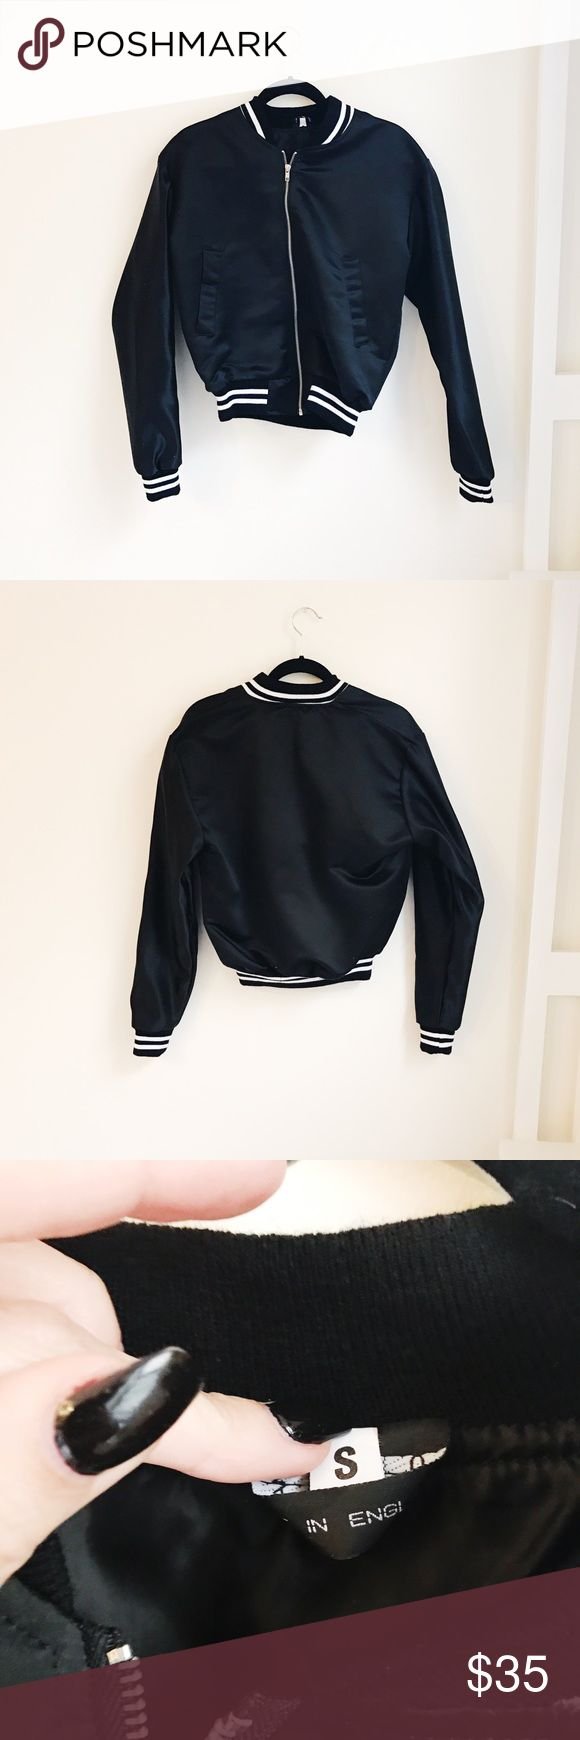 Urban Outfitters Bomber Jacket •never worn • black & white stripe detailing • satin material Urban Outfitters Jackets & Coats